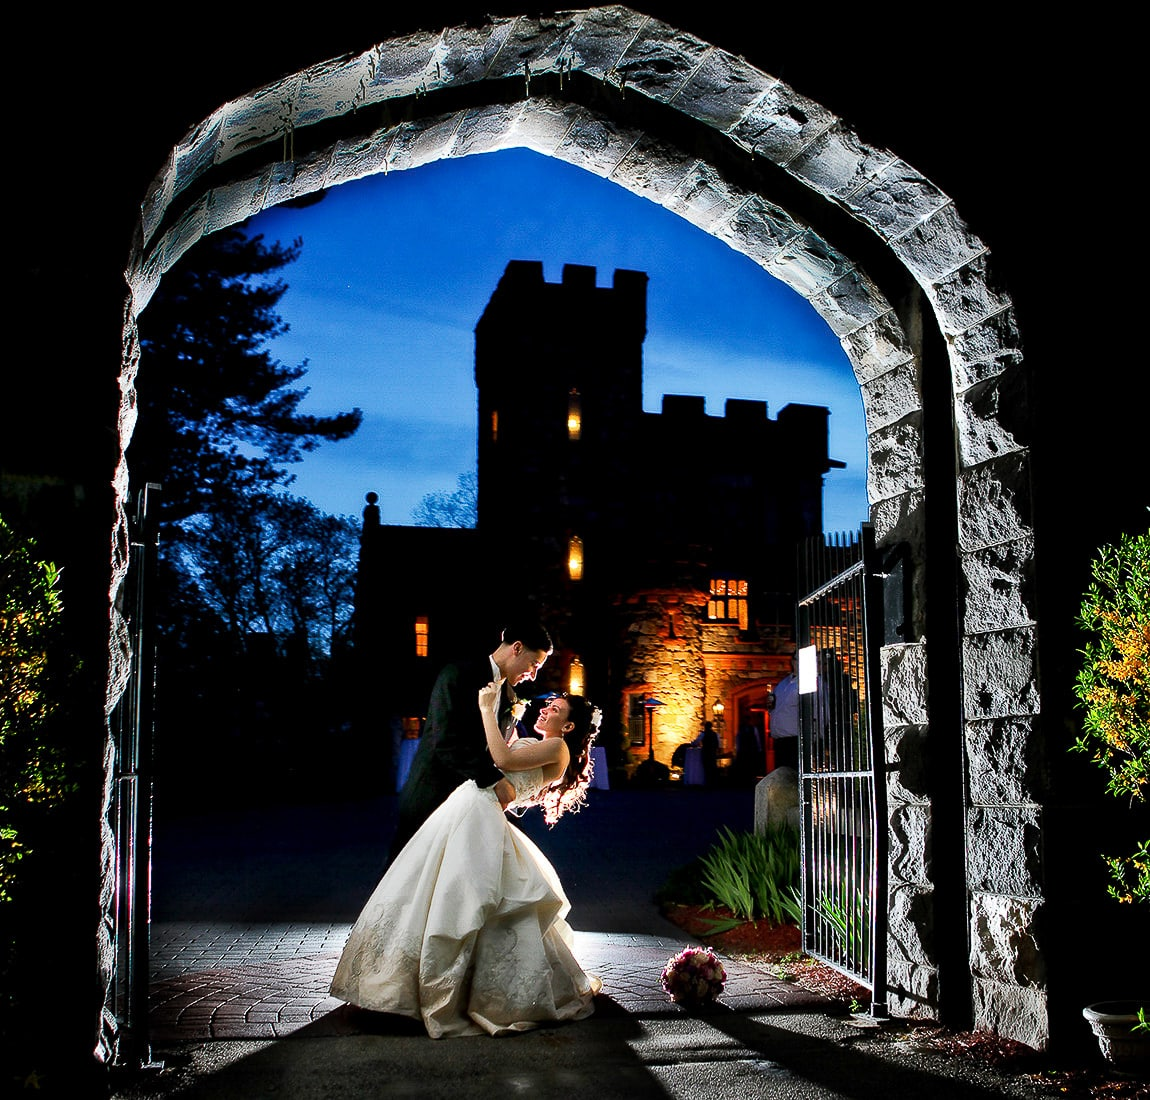 Story Unique Games To Play At Wedding Receptions: Searles Castle Is A Unique Setting For Your Wedding Reception